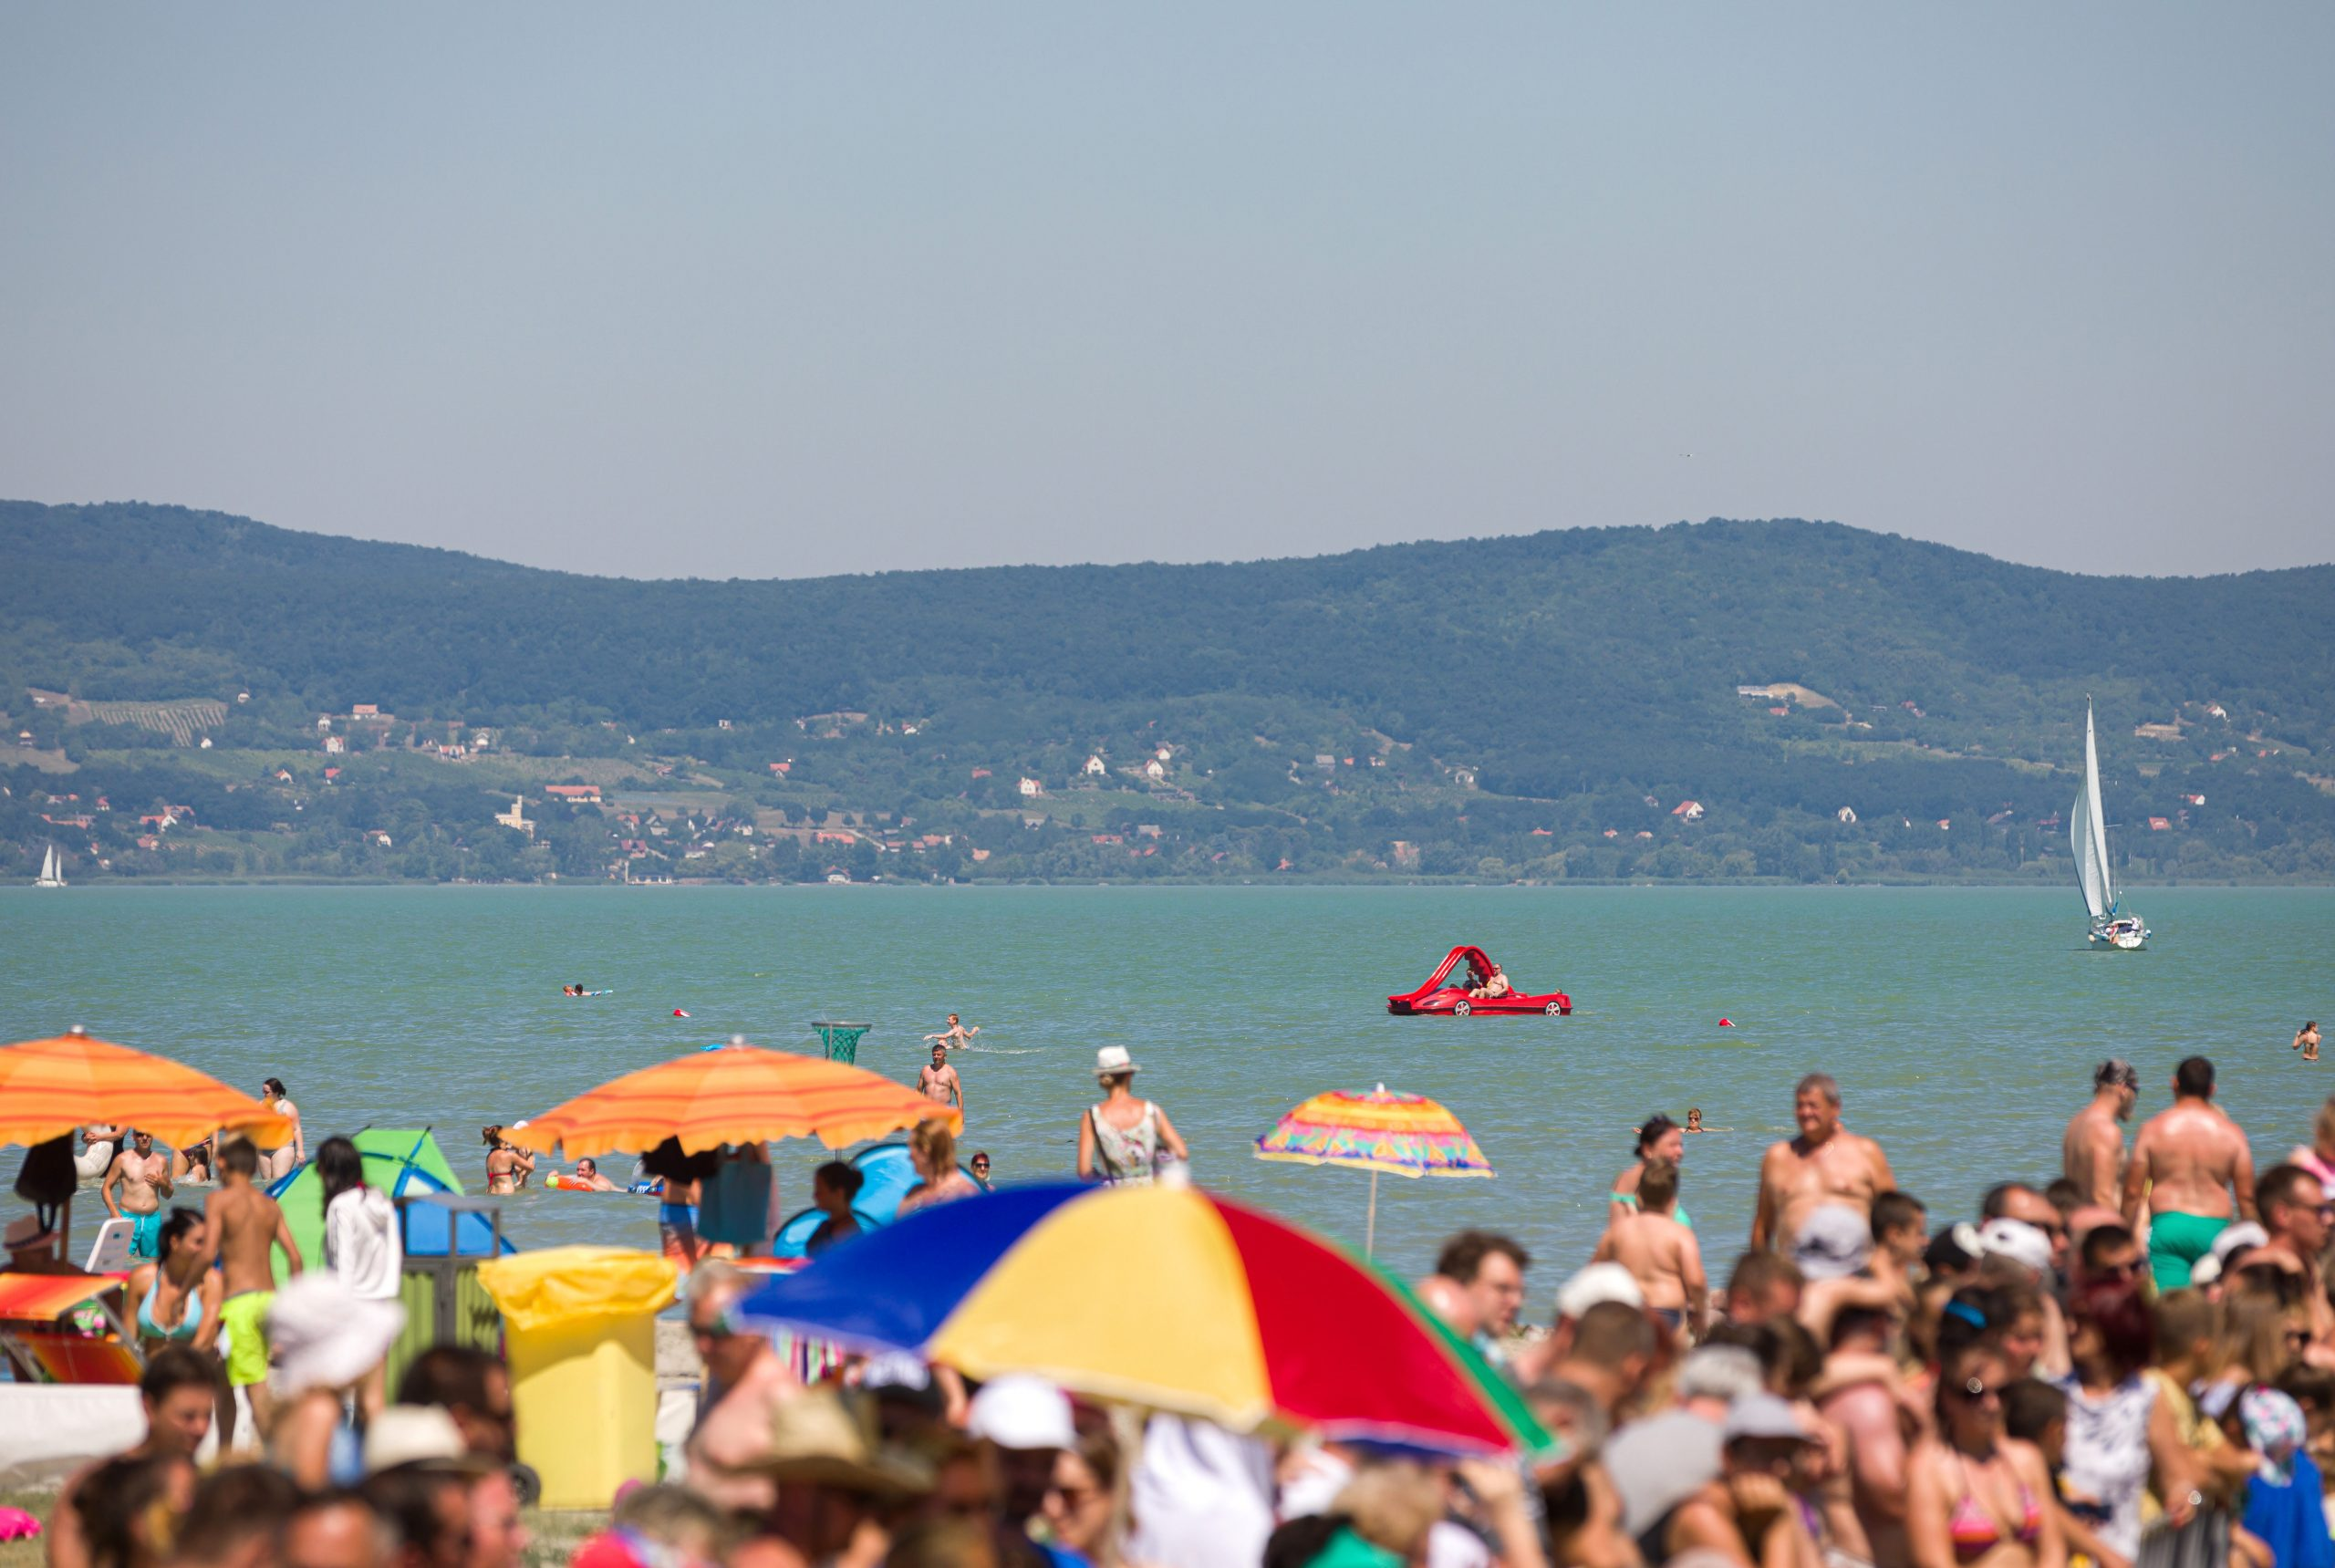 Full House at Lake Balaton, Domestic Tourism on the Rise due to Pandemic